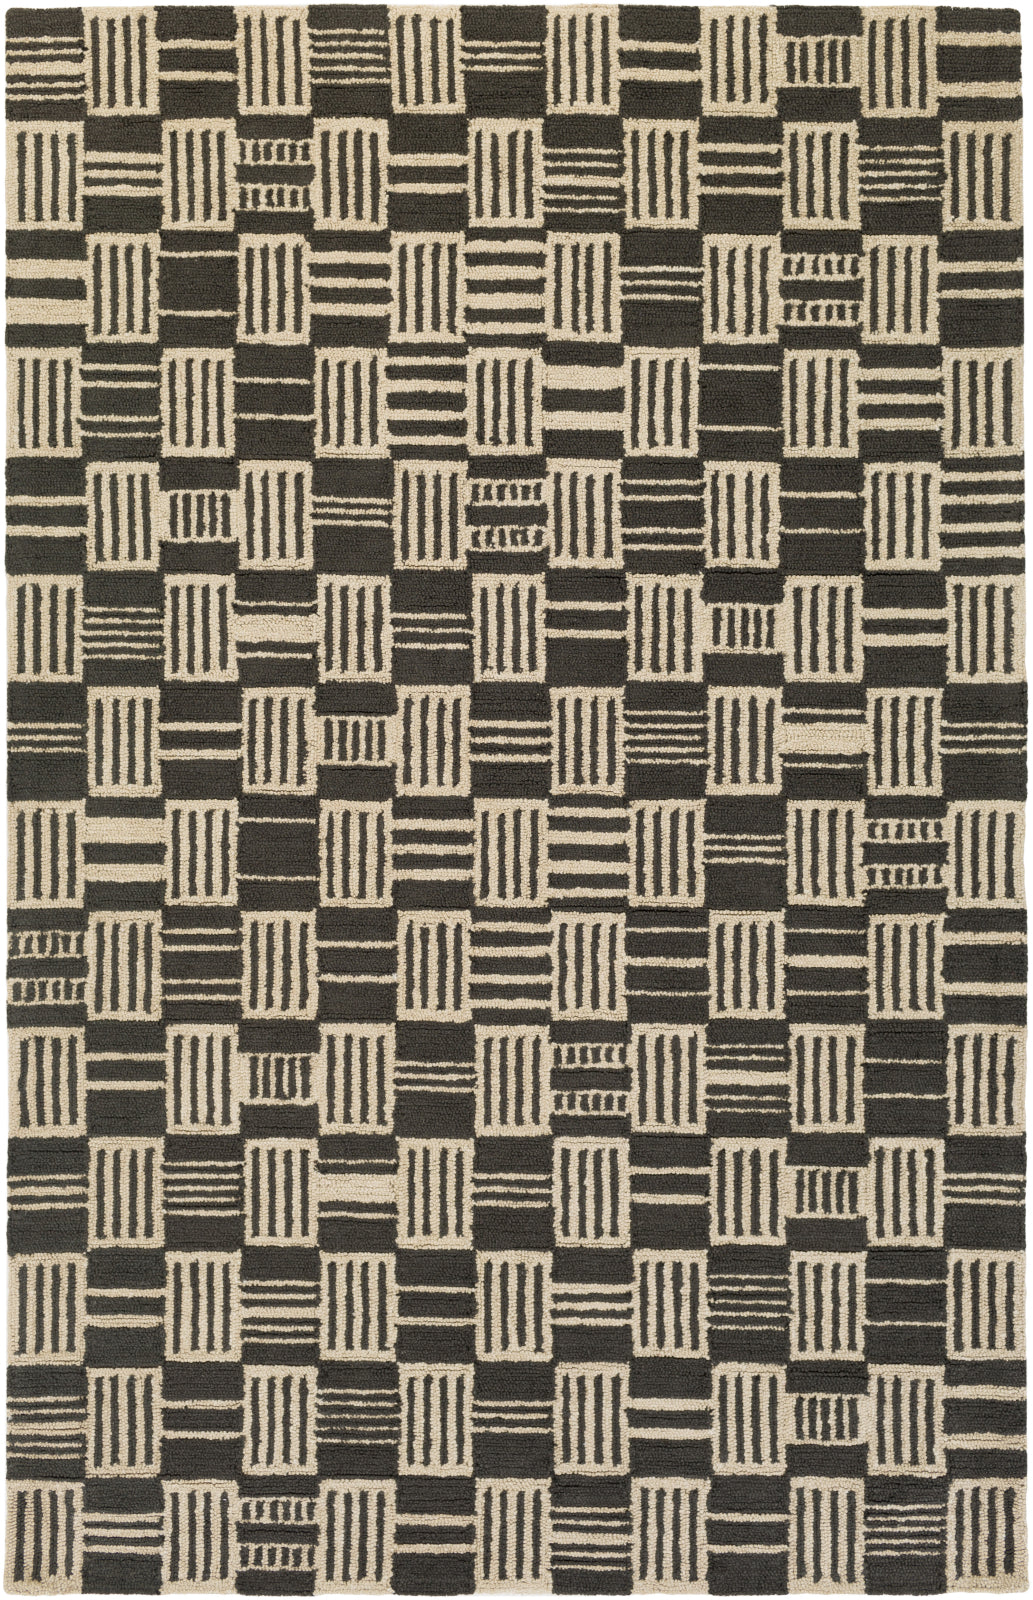 Artistic Weavers Congo Harriet CGO2417 Area Rug main image